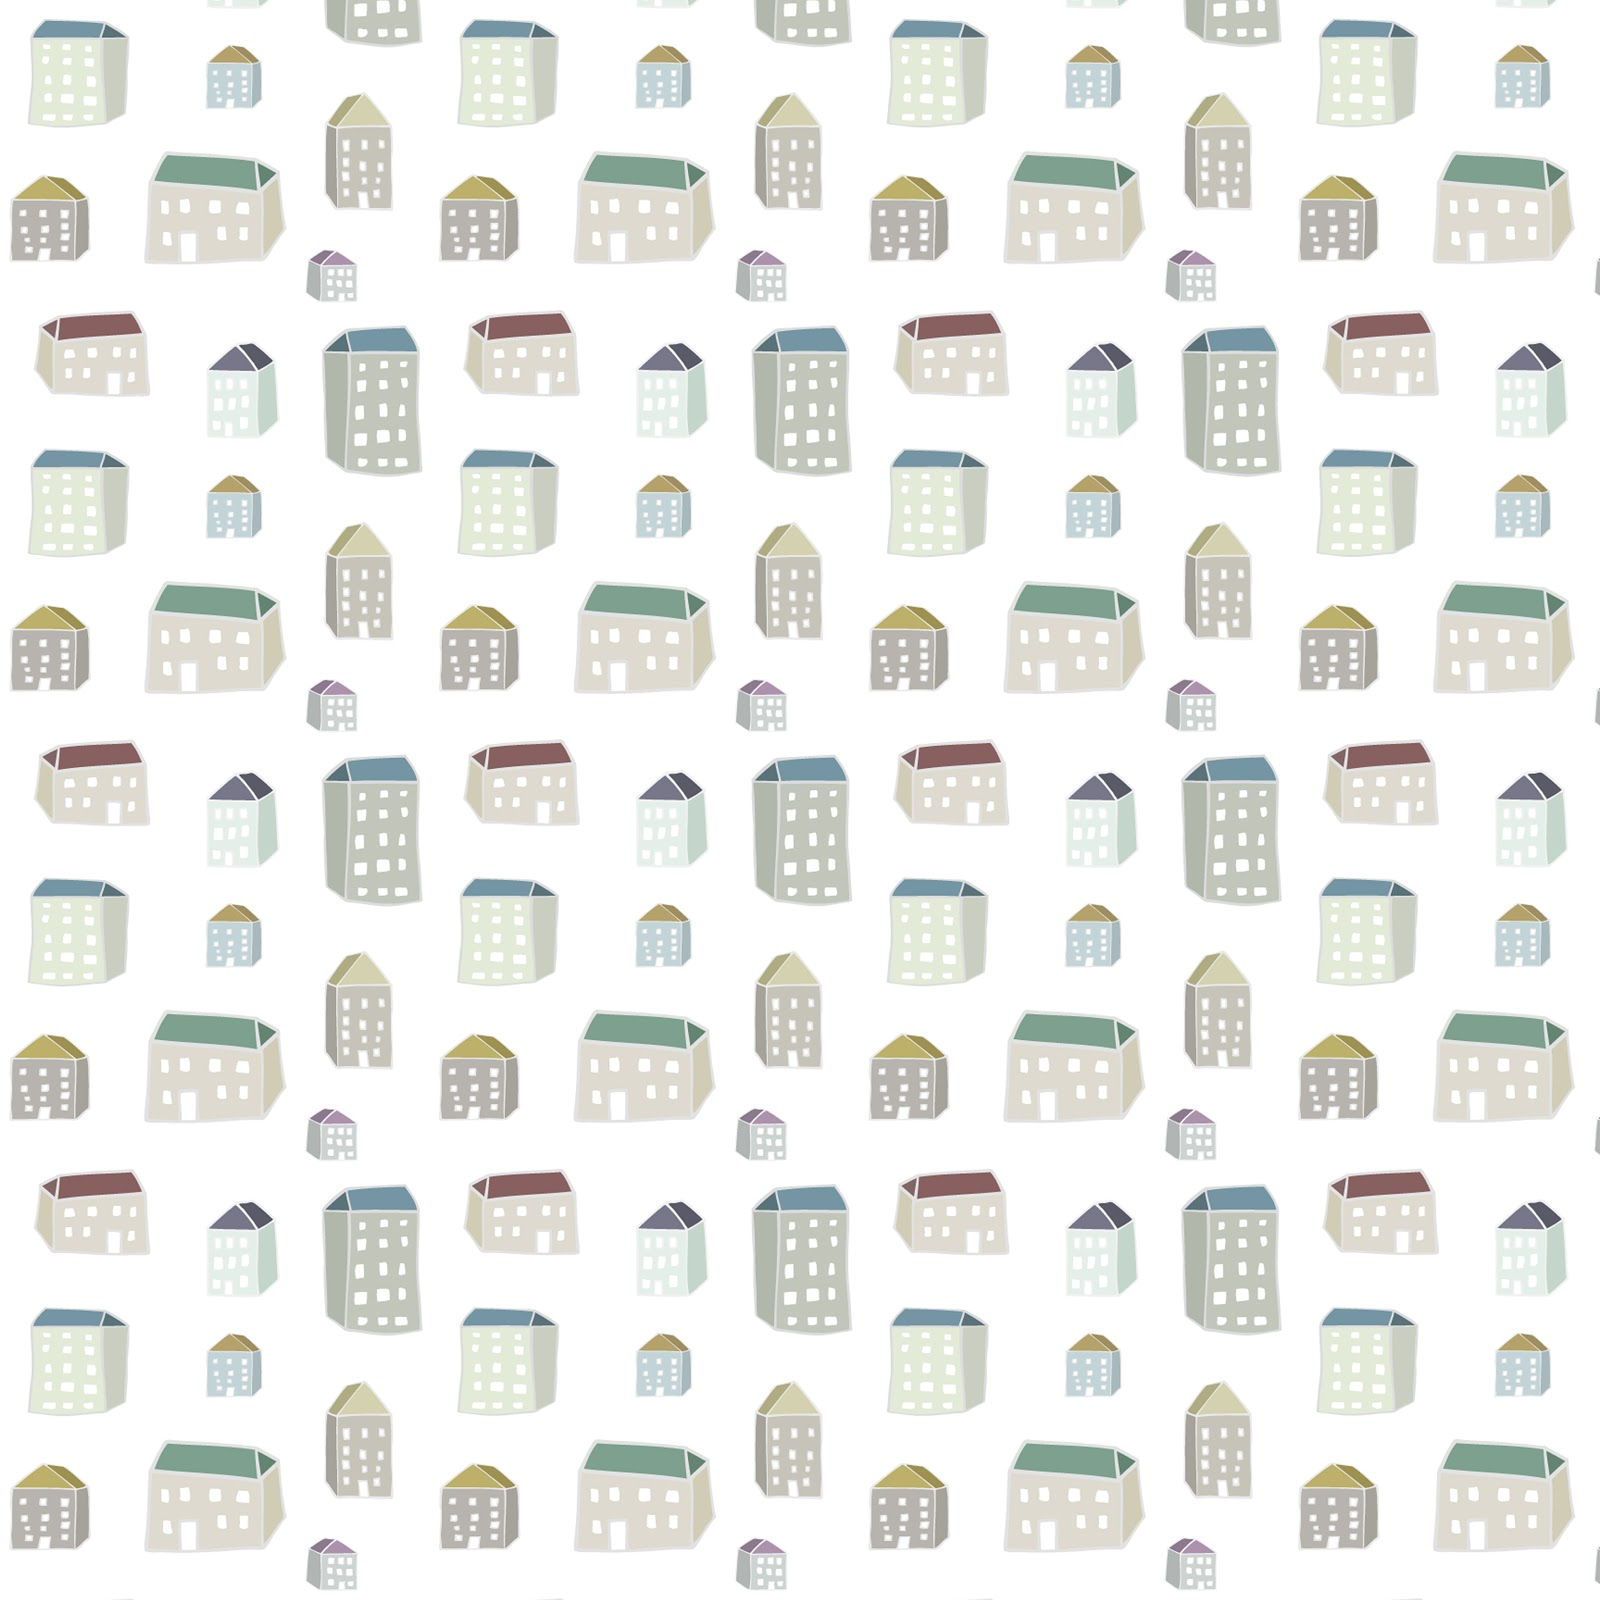 Nadia kovaliova blog new house pattern for House pattern